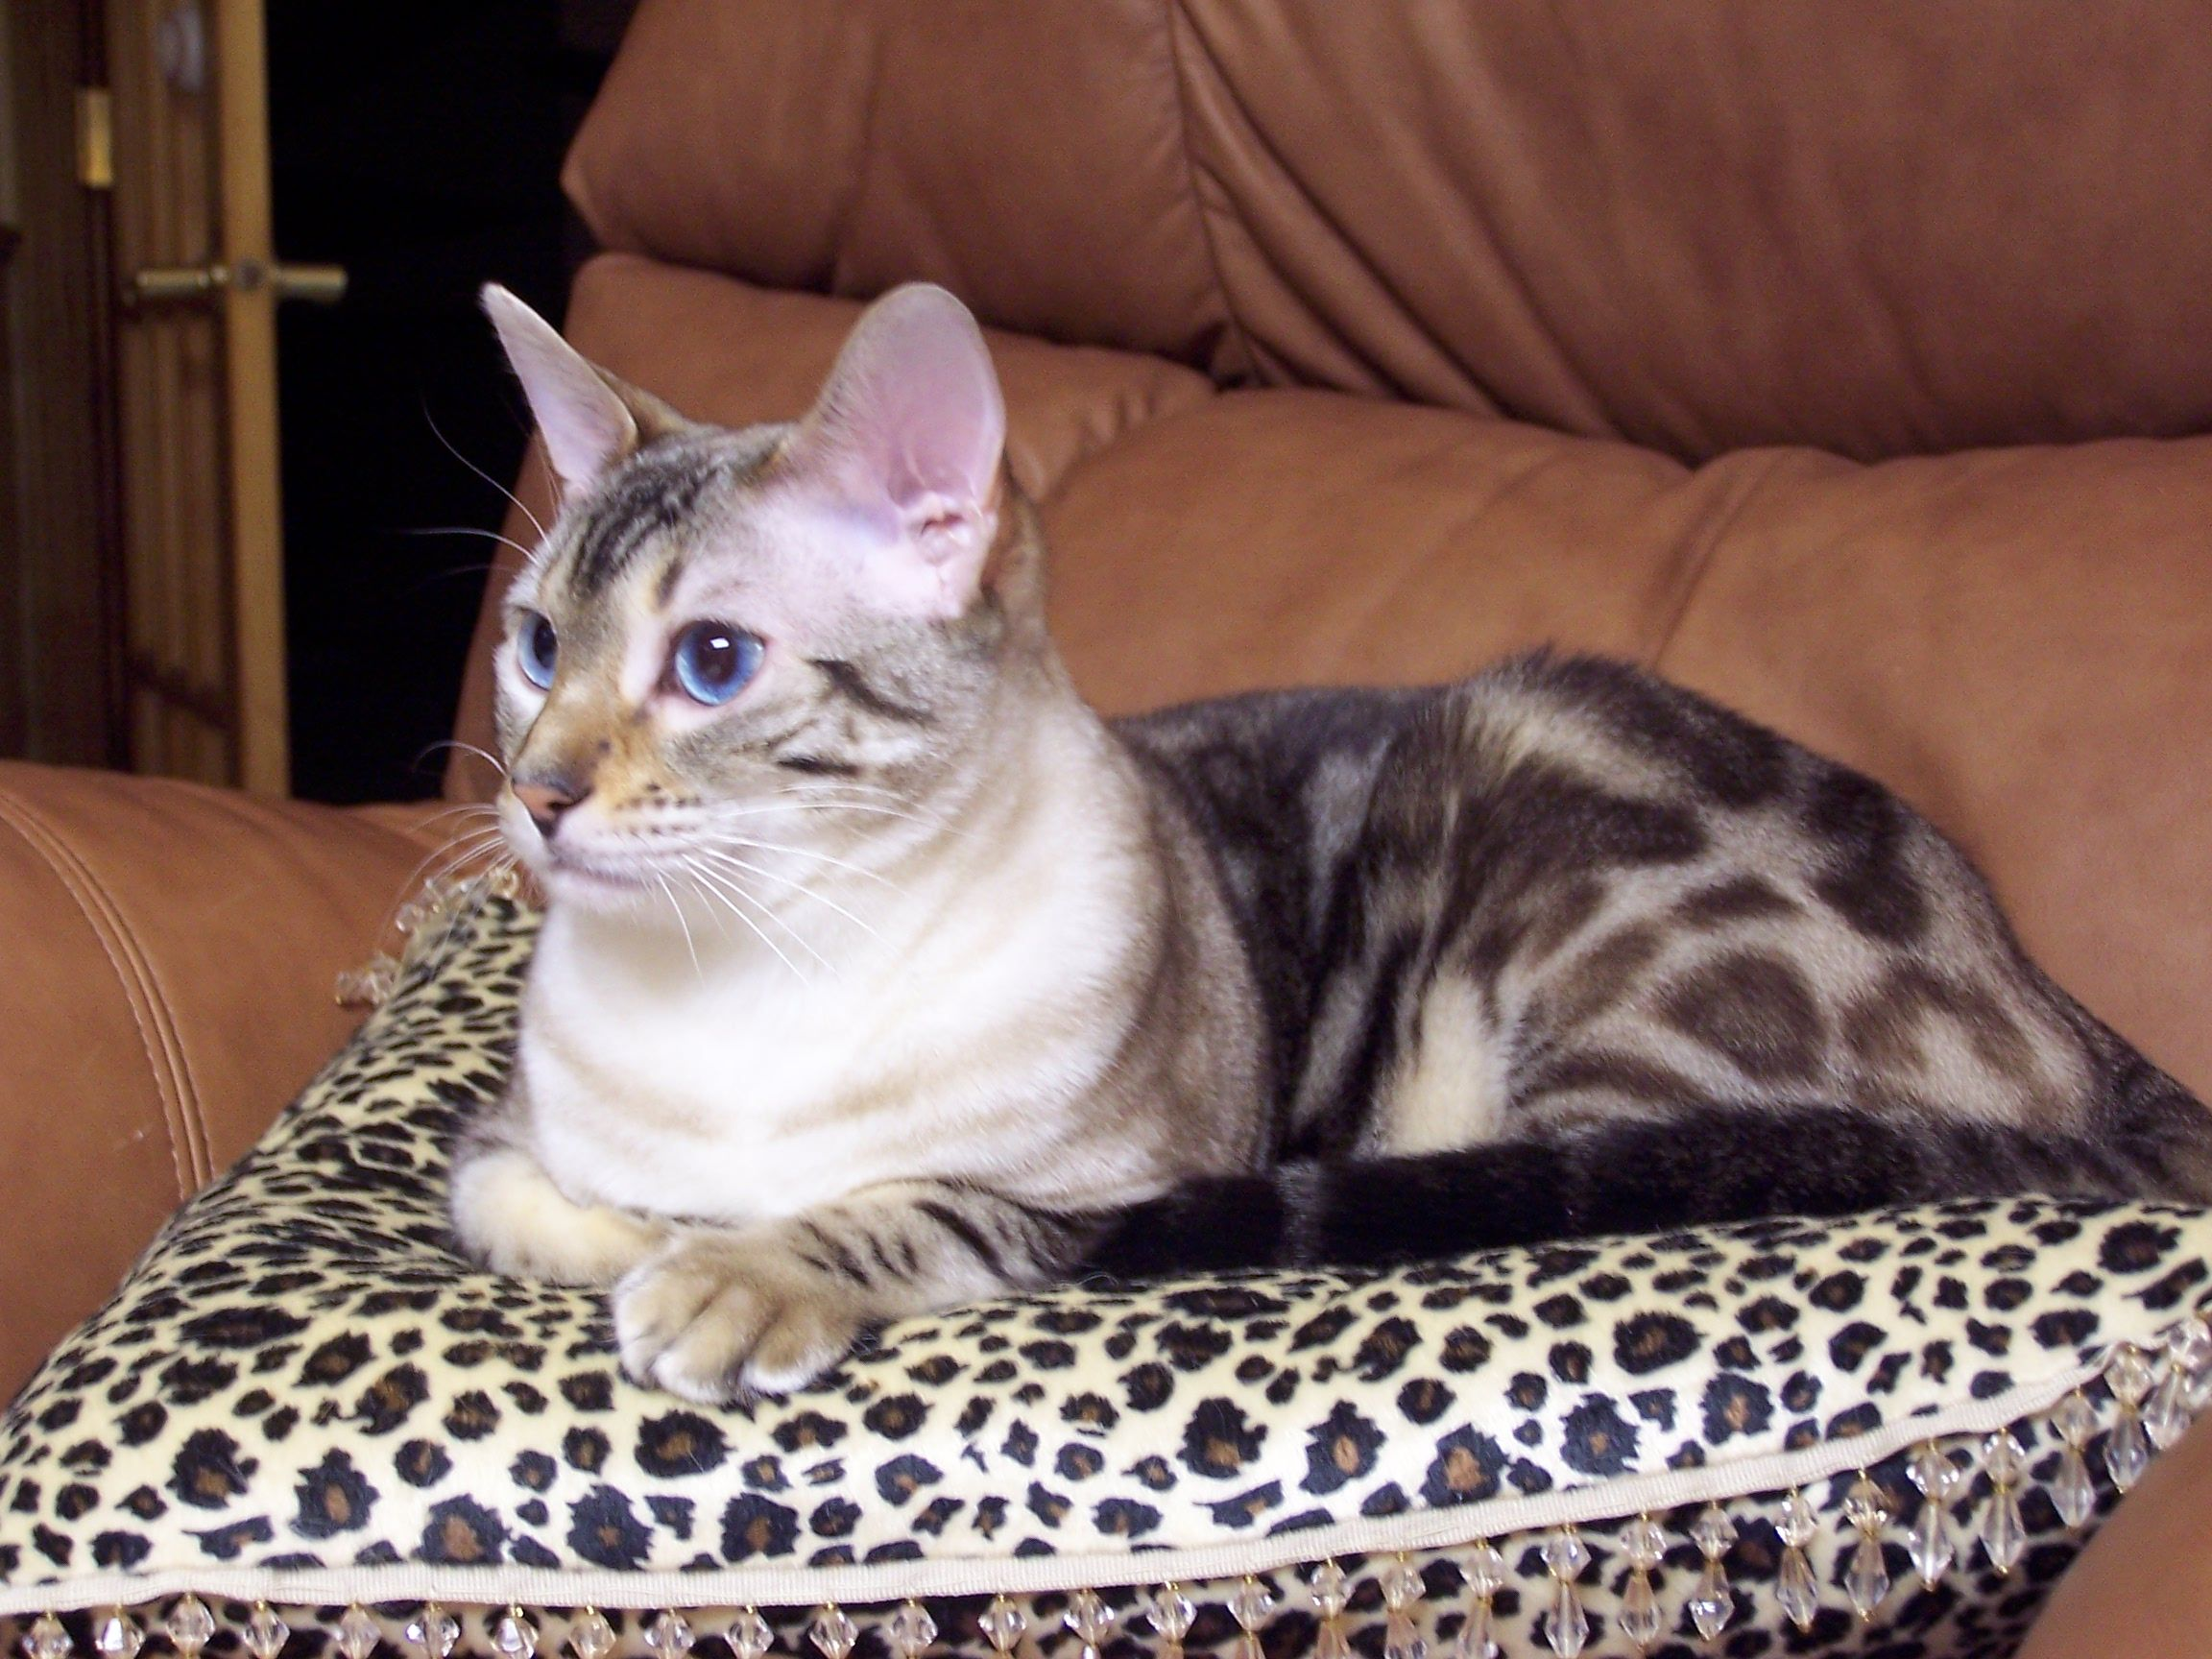 PERSONAL PICTURE This is my bengal cat named Kishi. He's